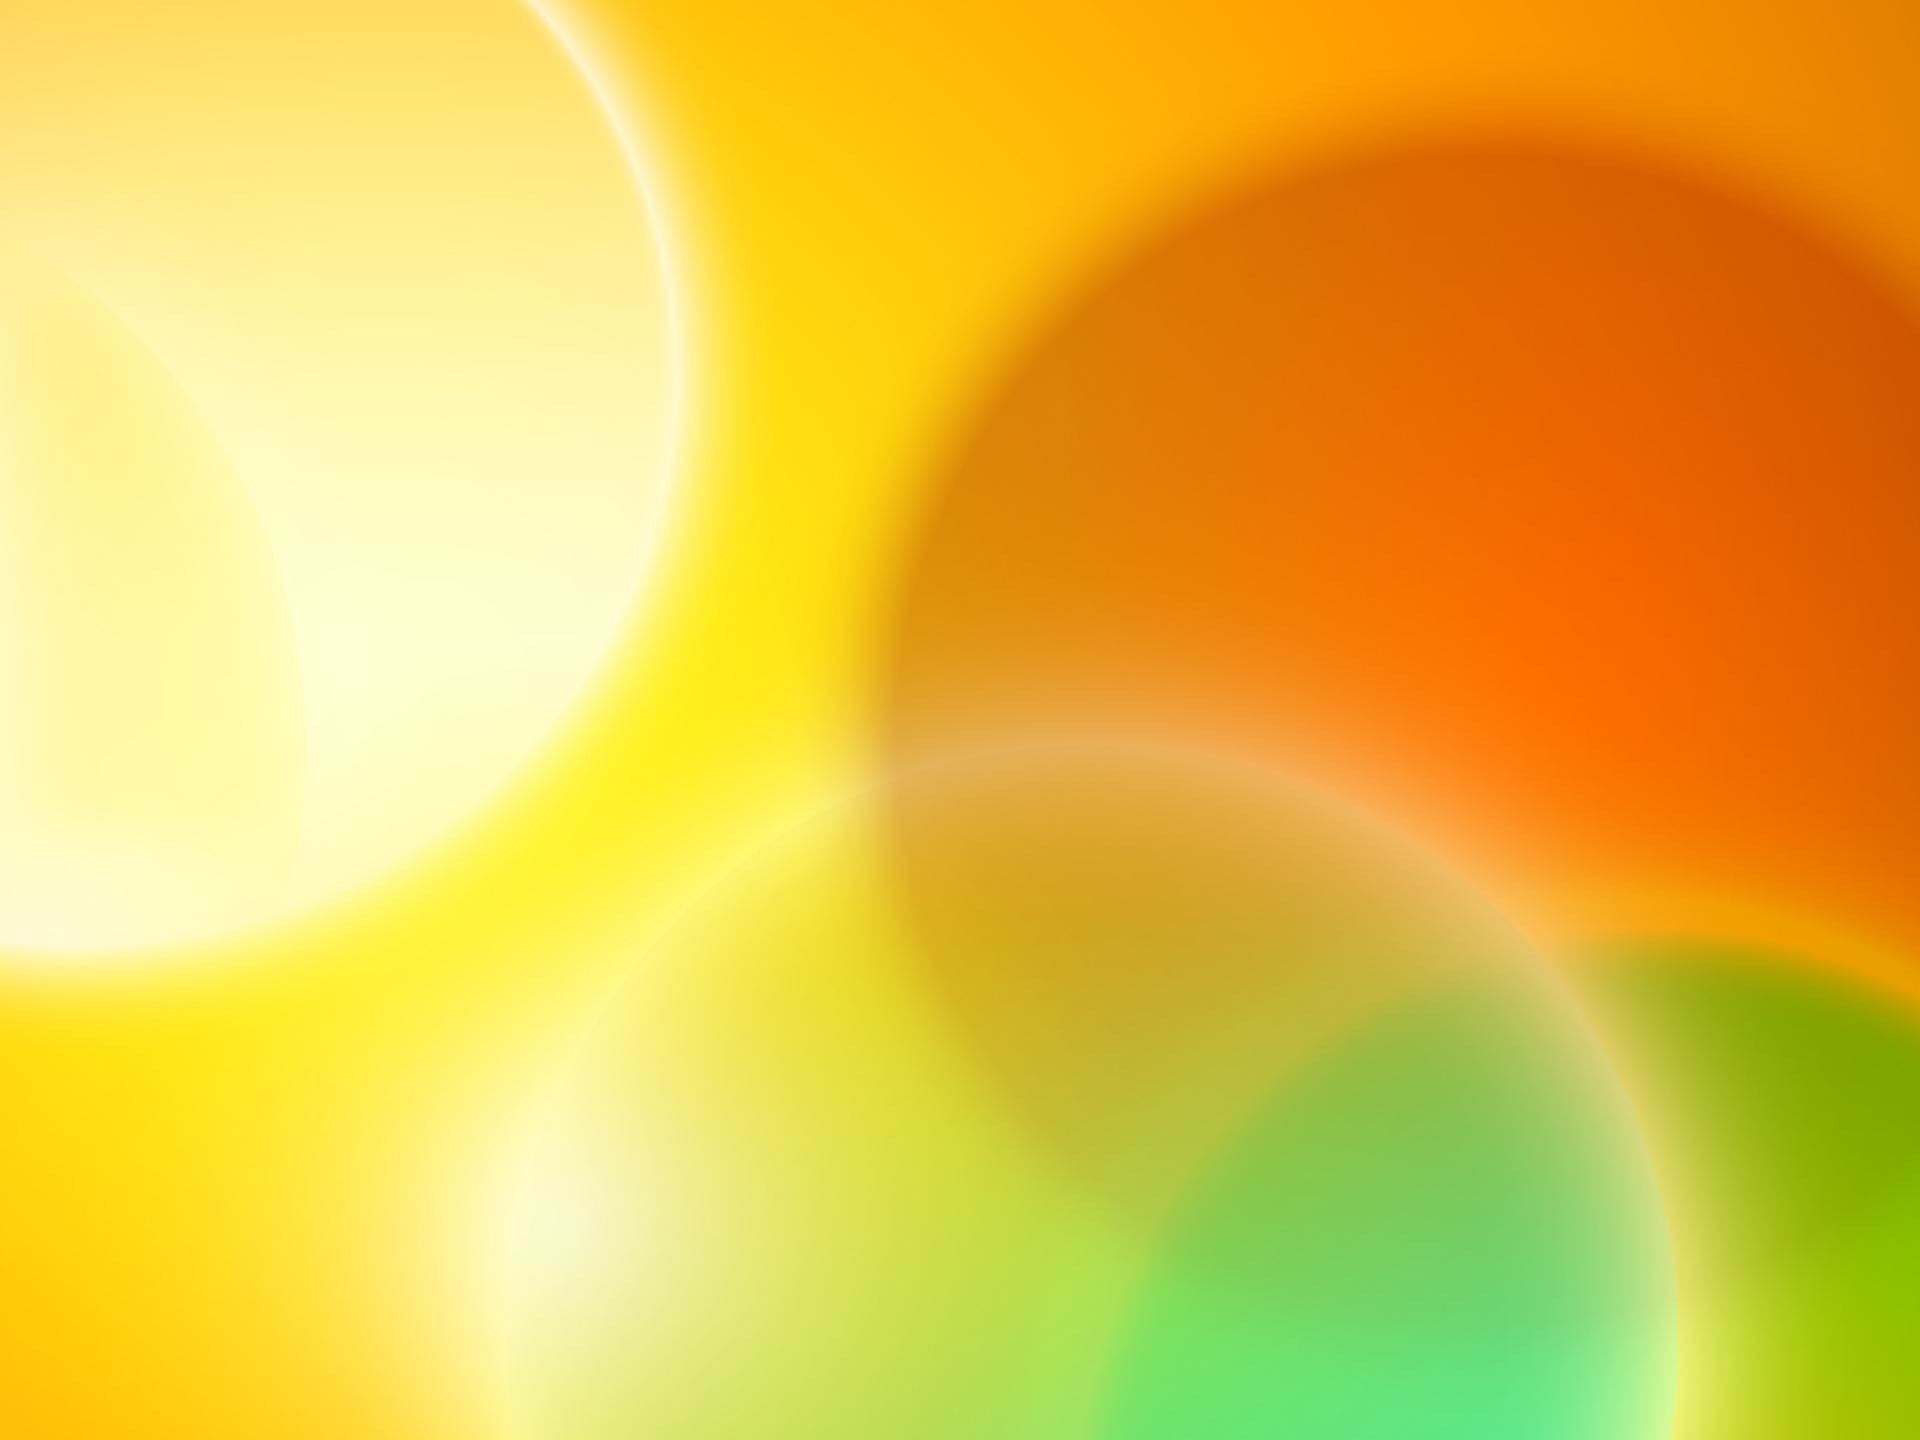 Light Colorful Backgrounds